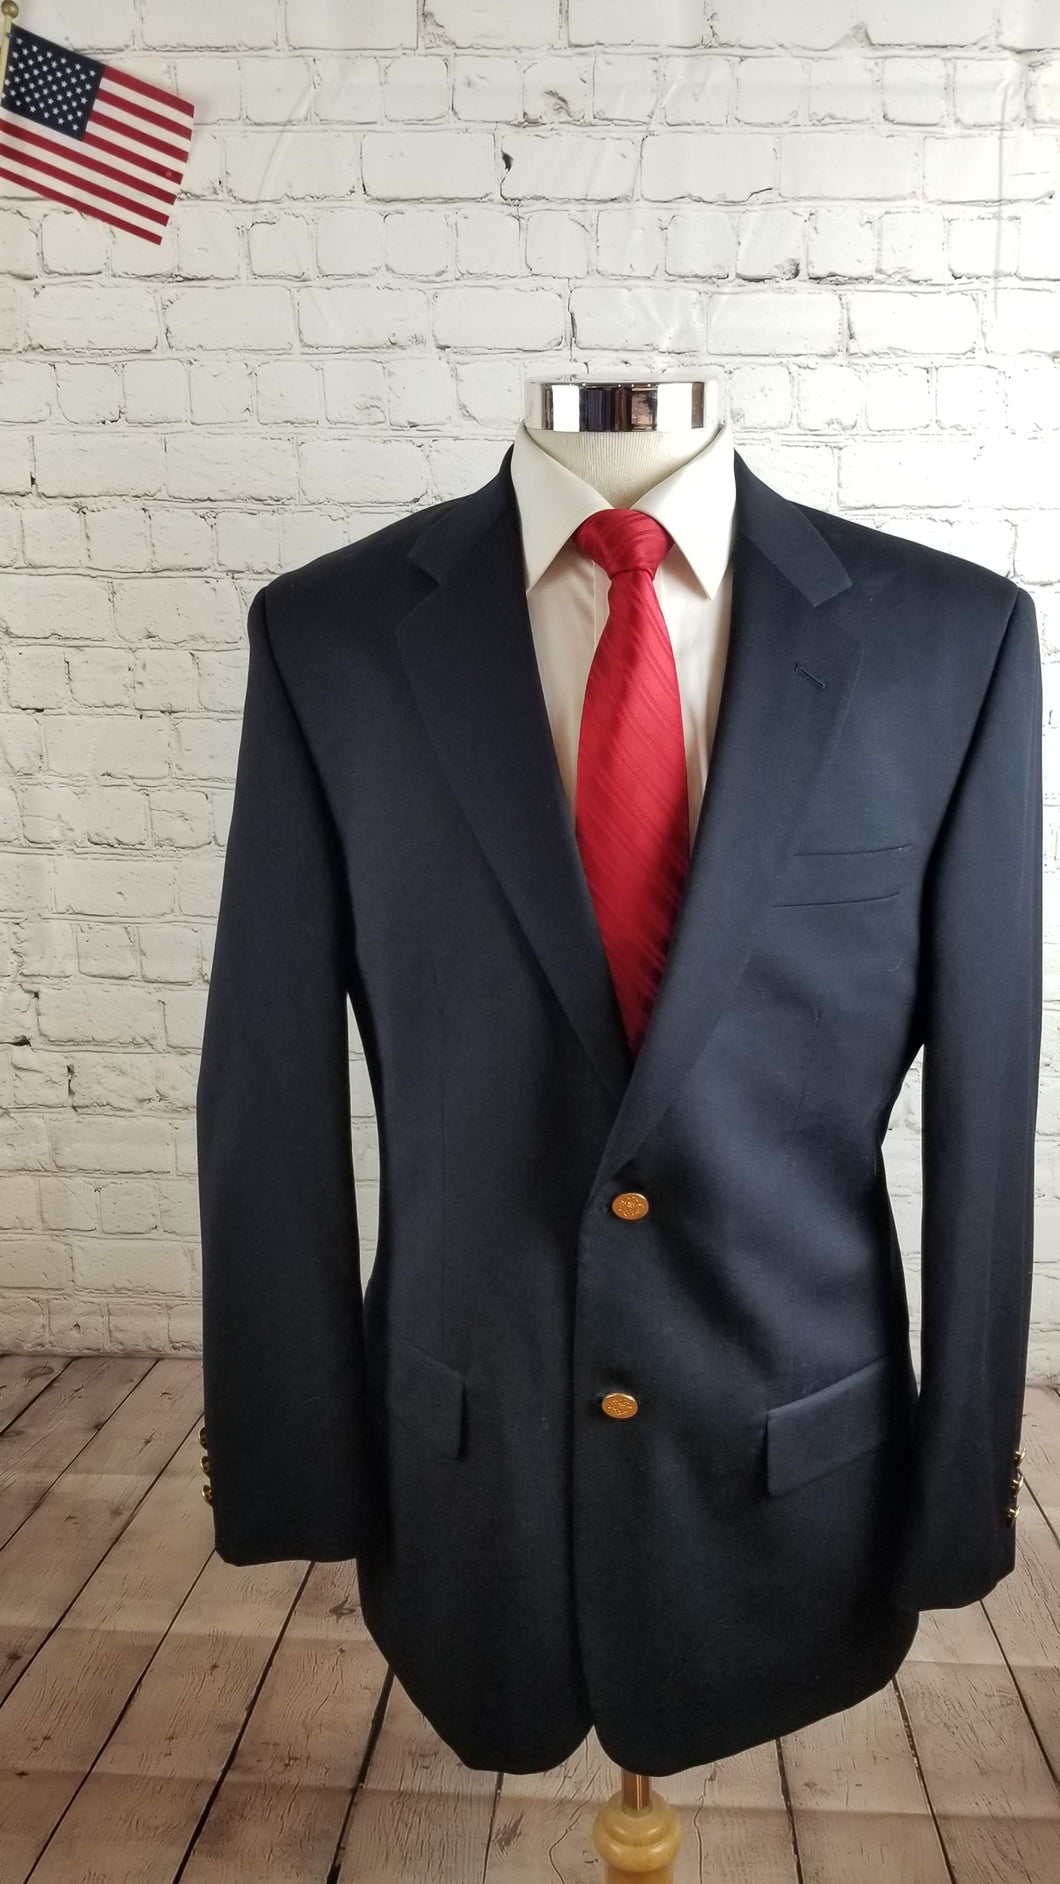 Joseph & Feiss Men's Navy WOOL Blazer Sport Coat Suit Jacket 42R $395